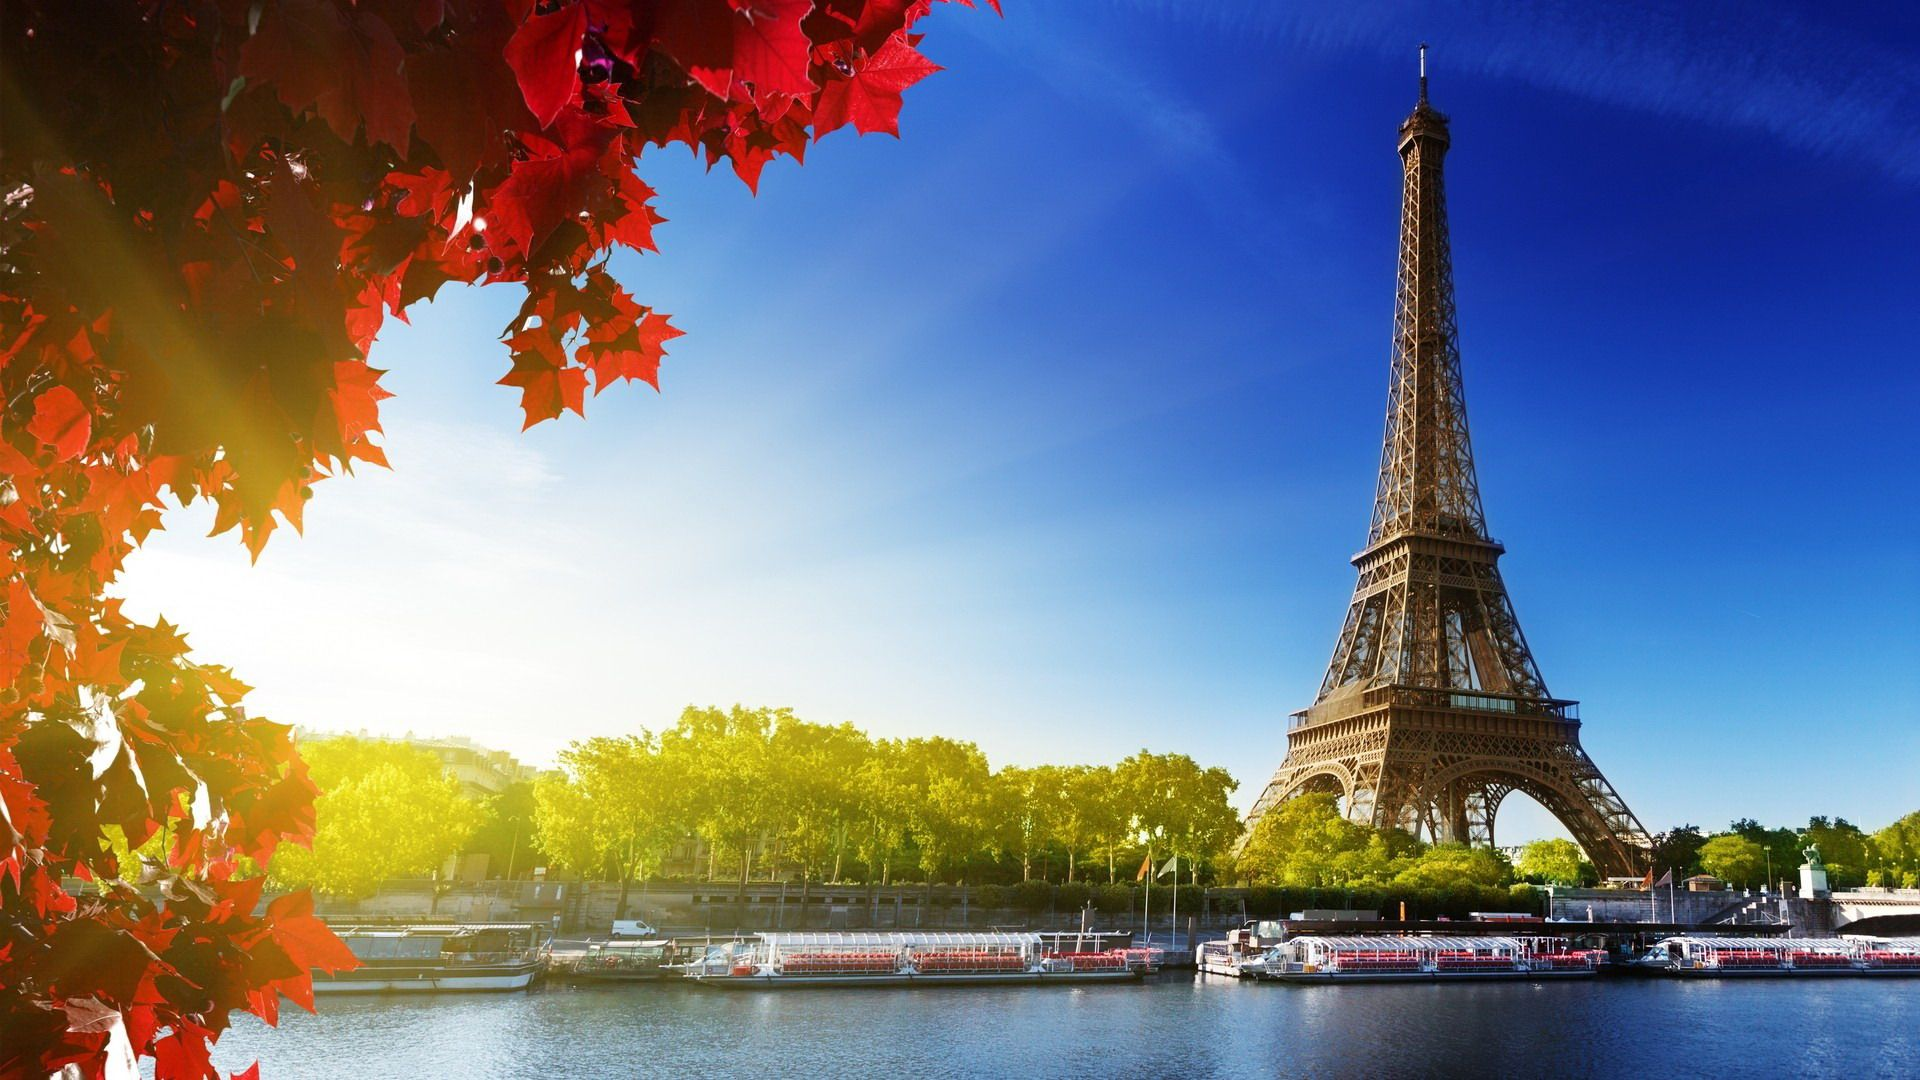 Eiffel Tower Paris France Autumn Wallpaper | Wallpup.com